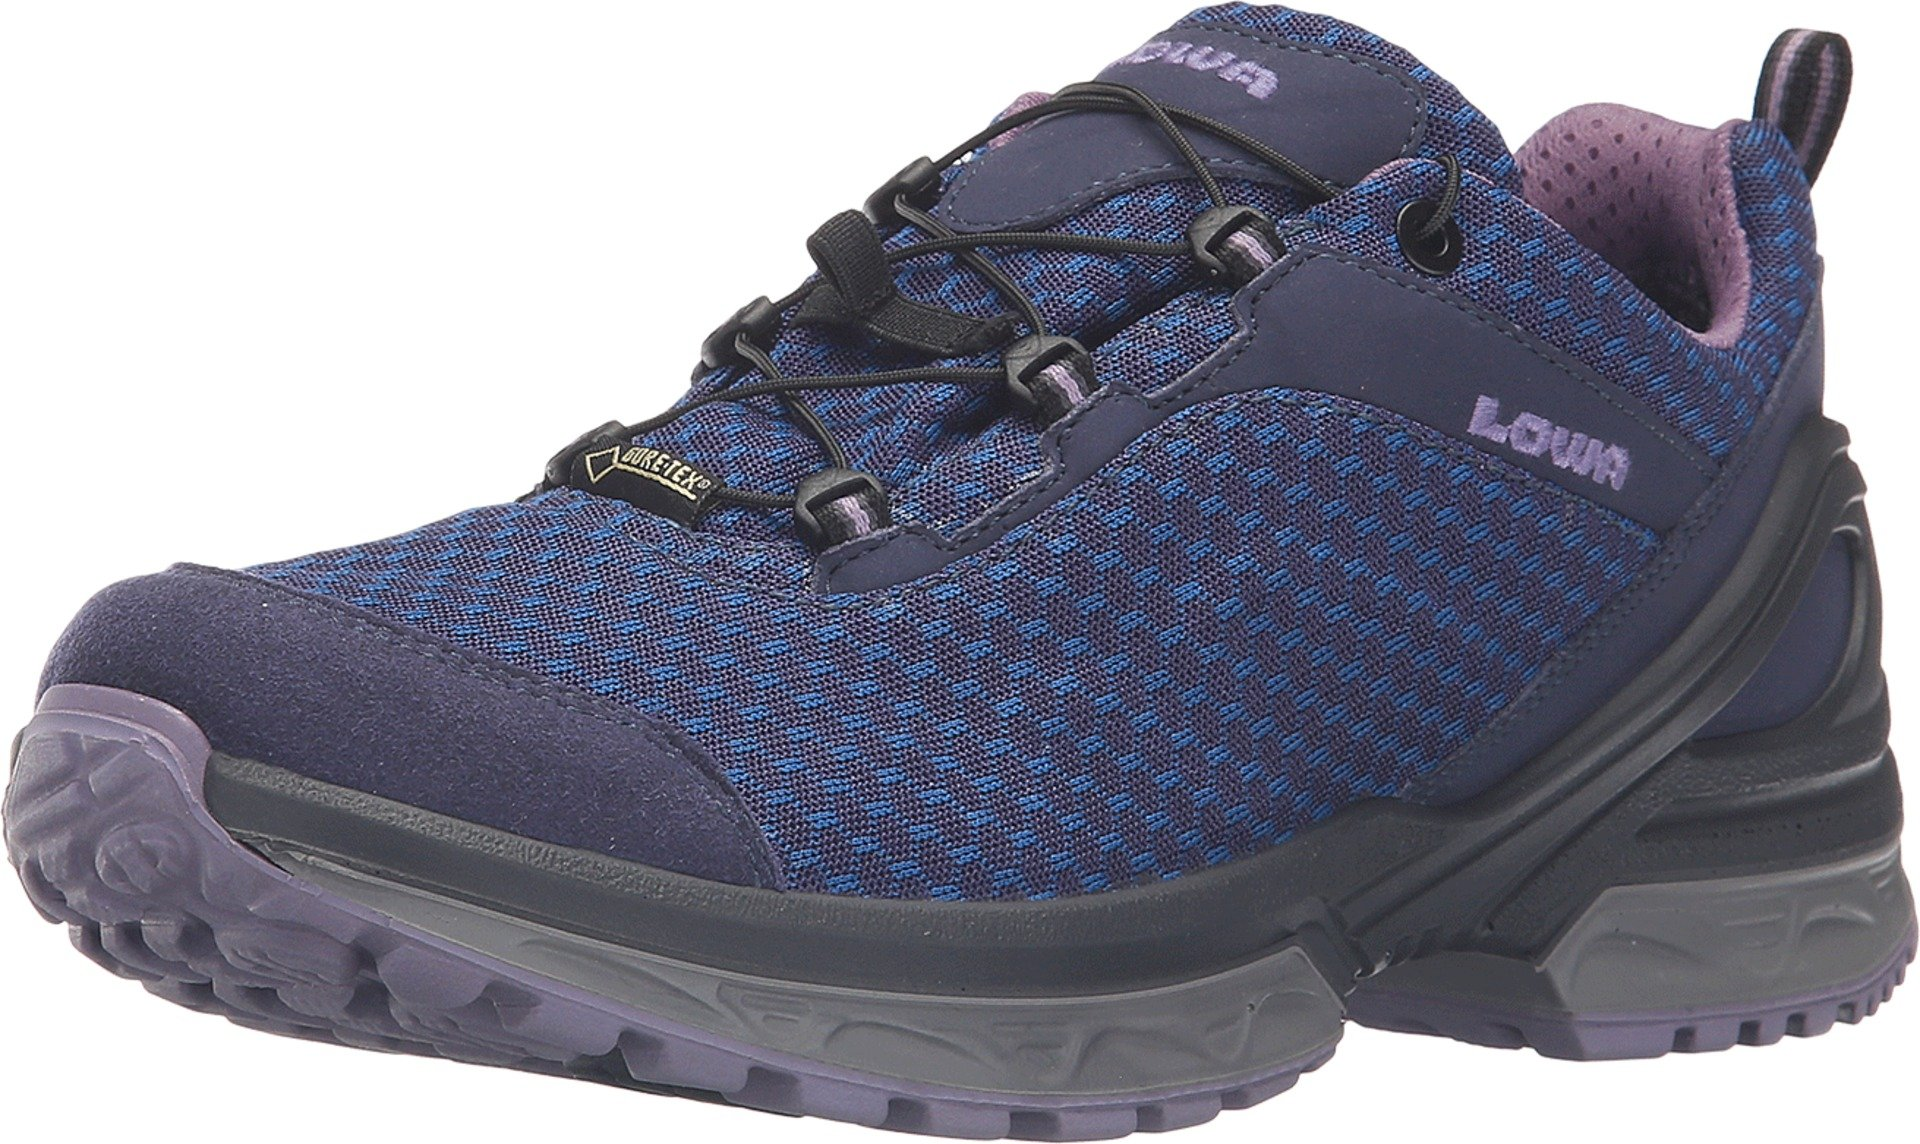 Lowa Women's Onyx GTX Lo Blackberry/Lilac Athletic Shoe by LOWA Boots